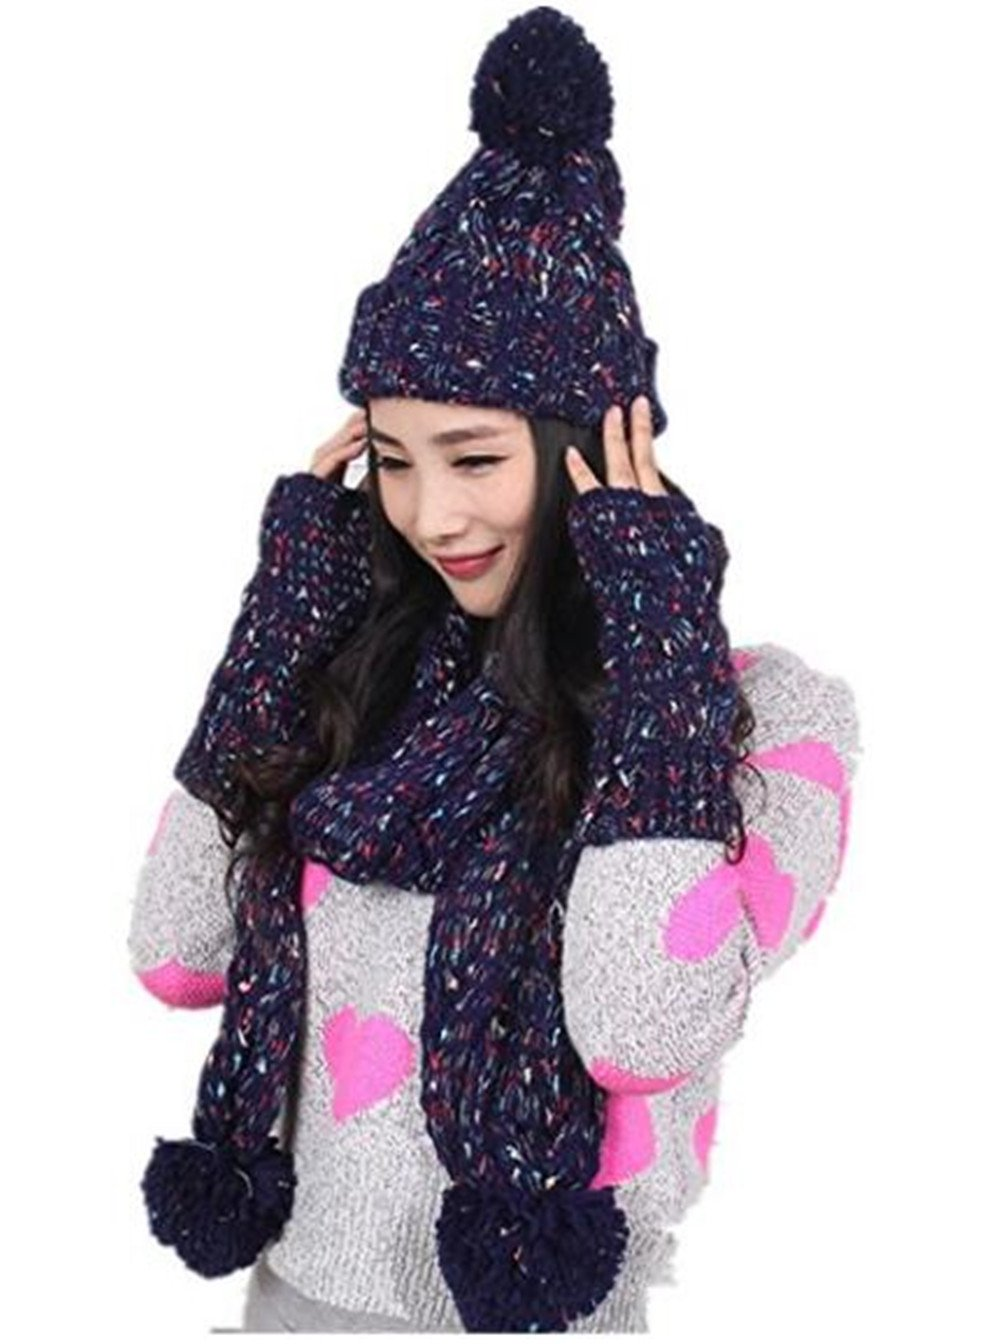 Xugq66 Winter Warm Girl Wool Hat/Scarf/Gloves Set Women Knitted Hat/Scarf/Mitten 3pcs (Beige)